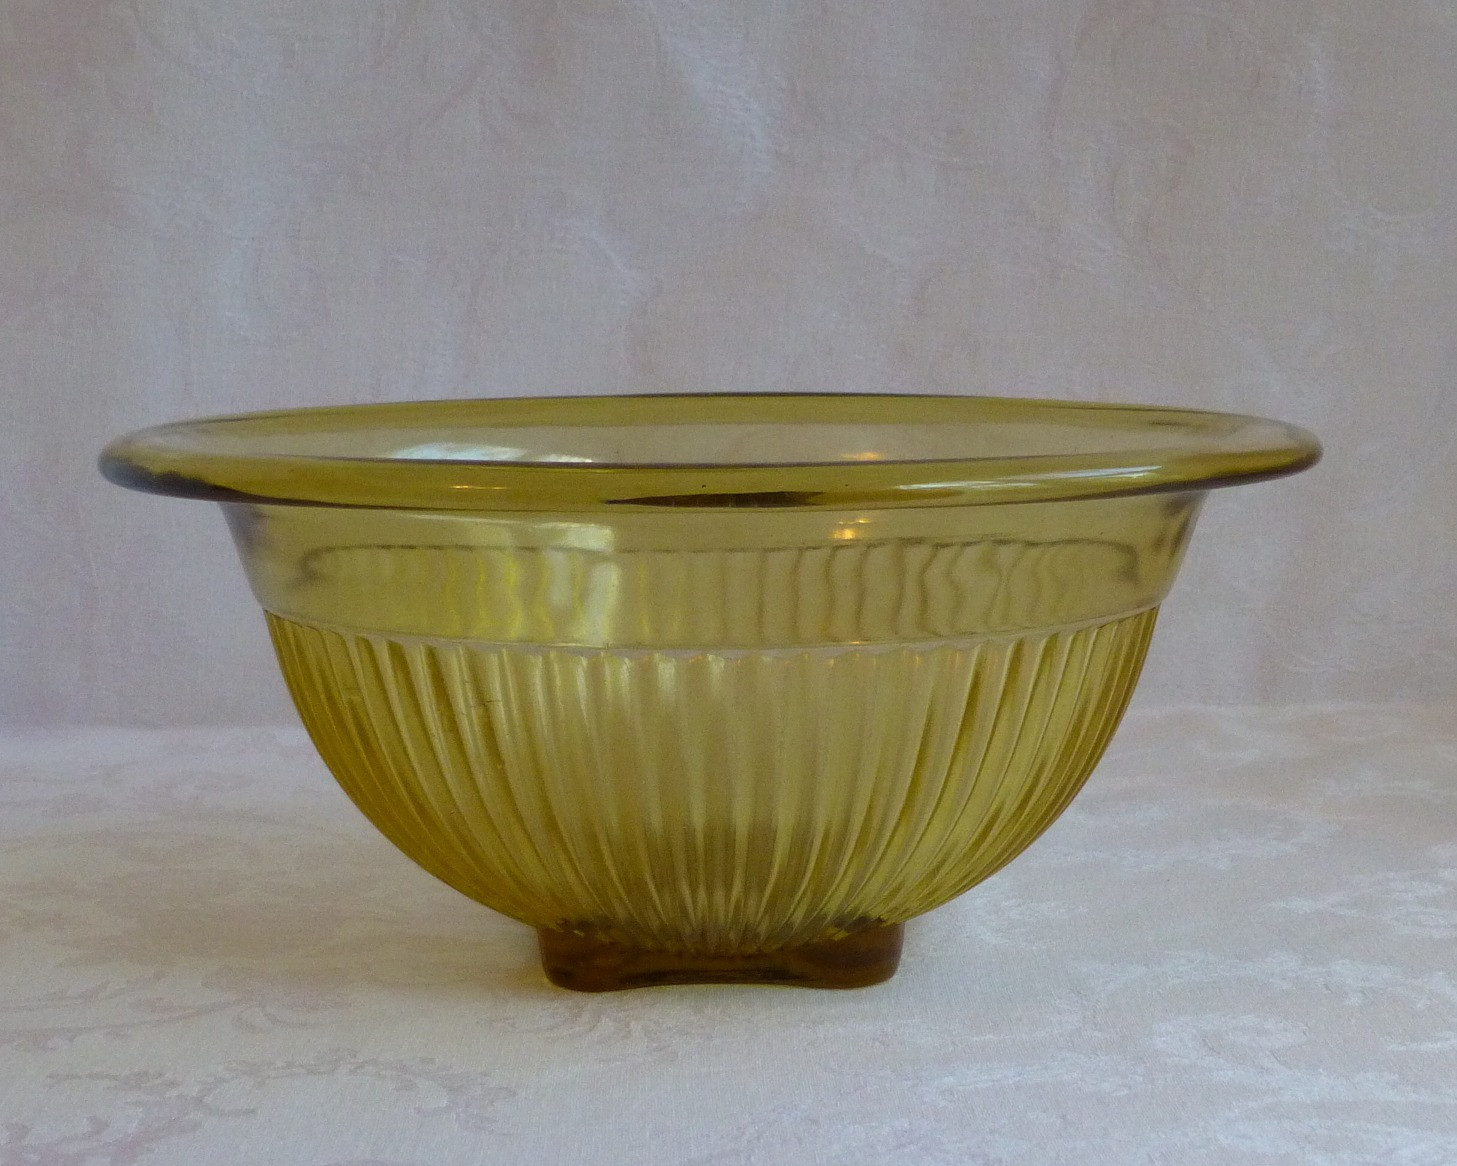 mikasa vases and bowls of all products in intended for click to view image